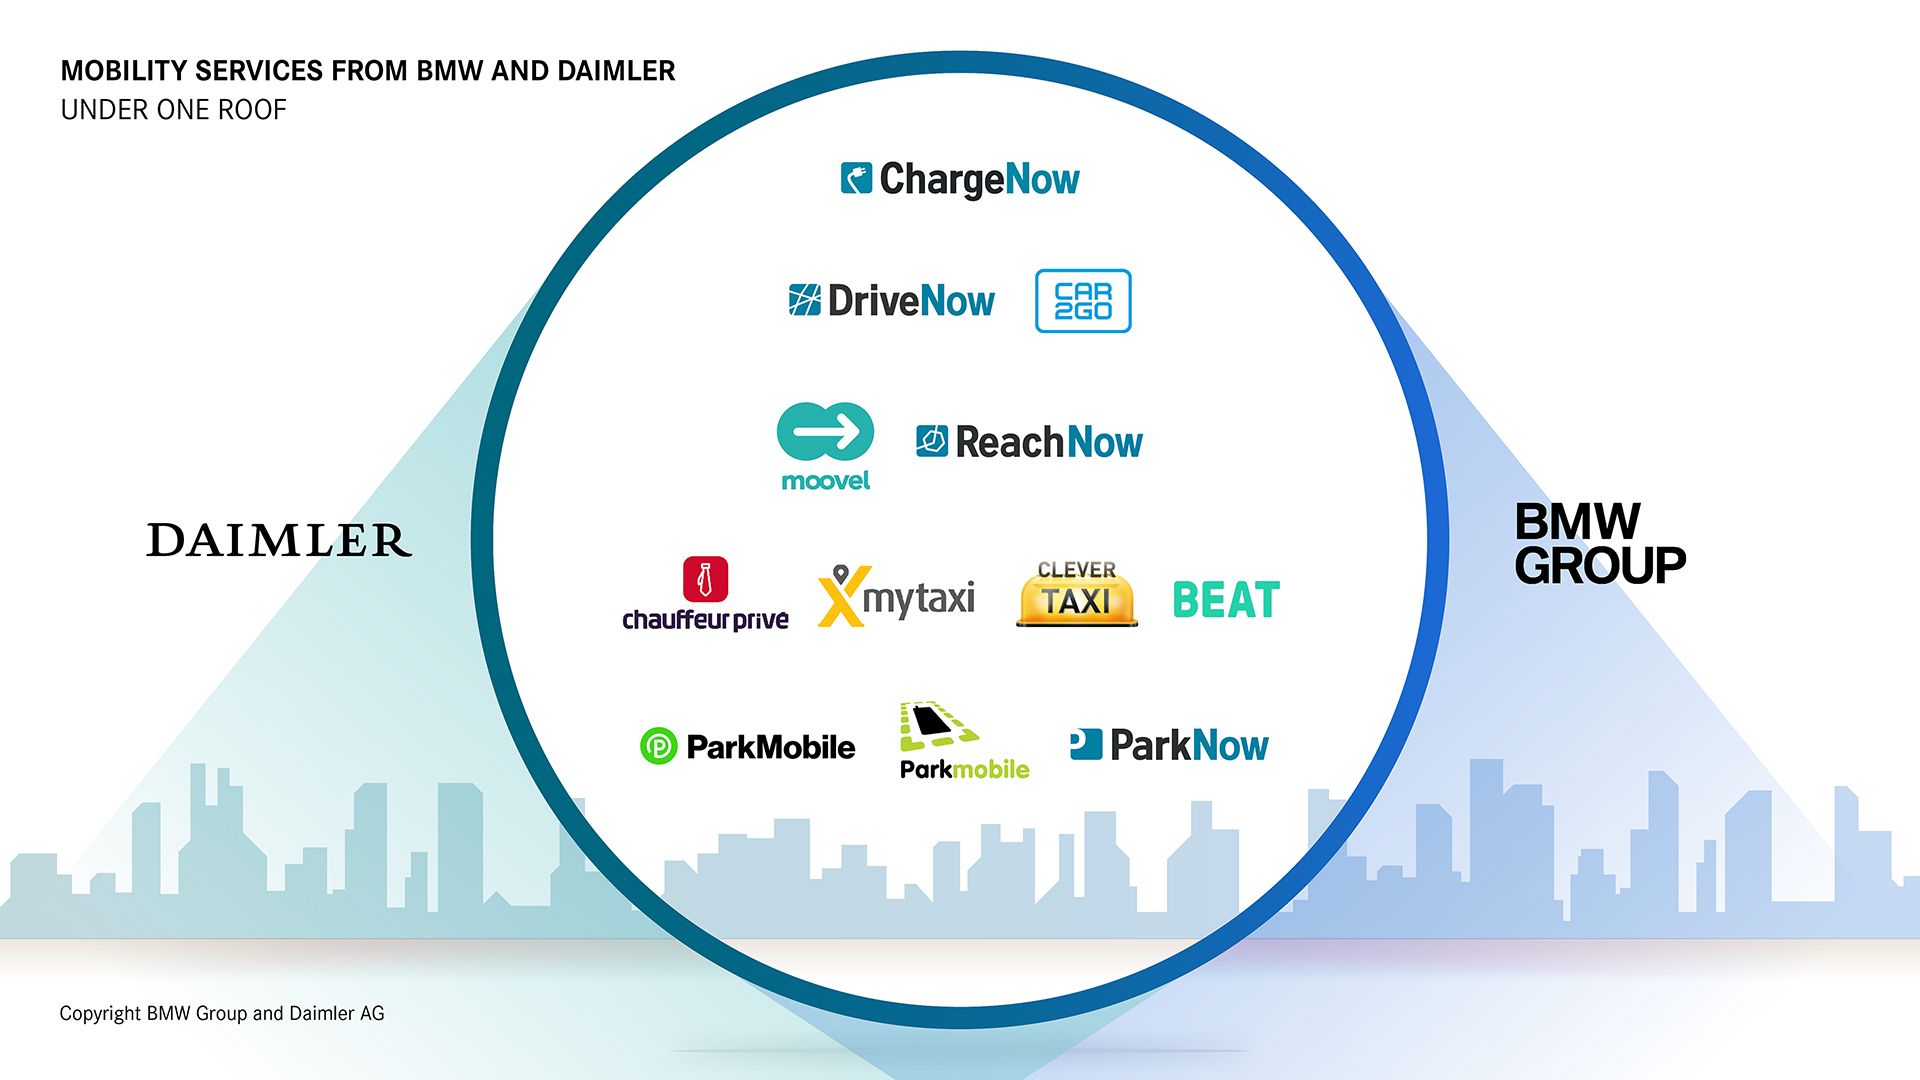 BMW Group and Daimler AG are creating a holistic, intelligent and seamless ecosystem of mobility services